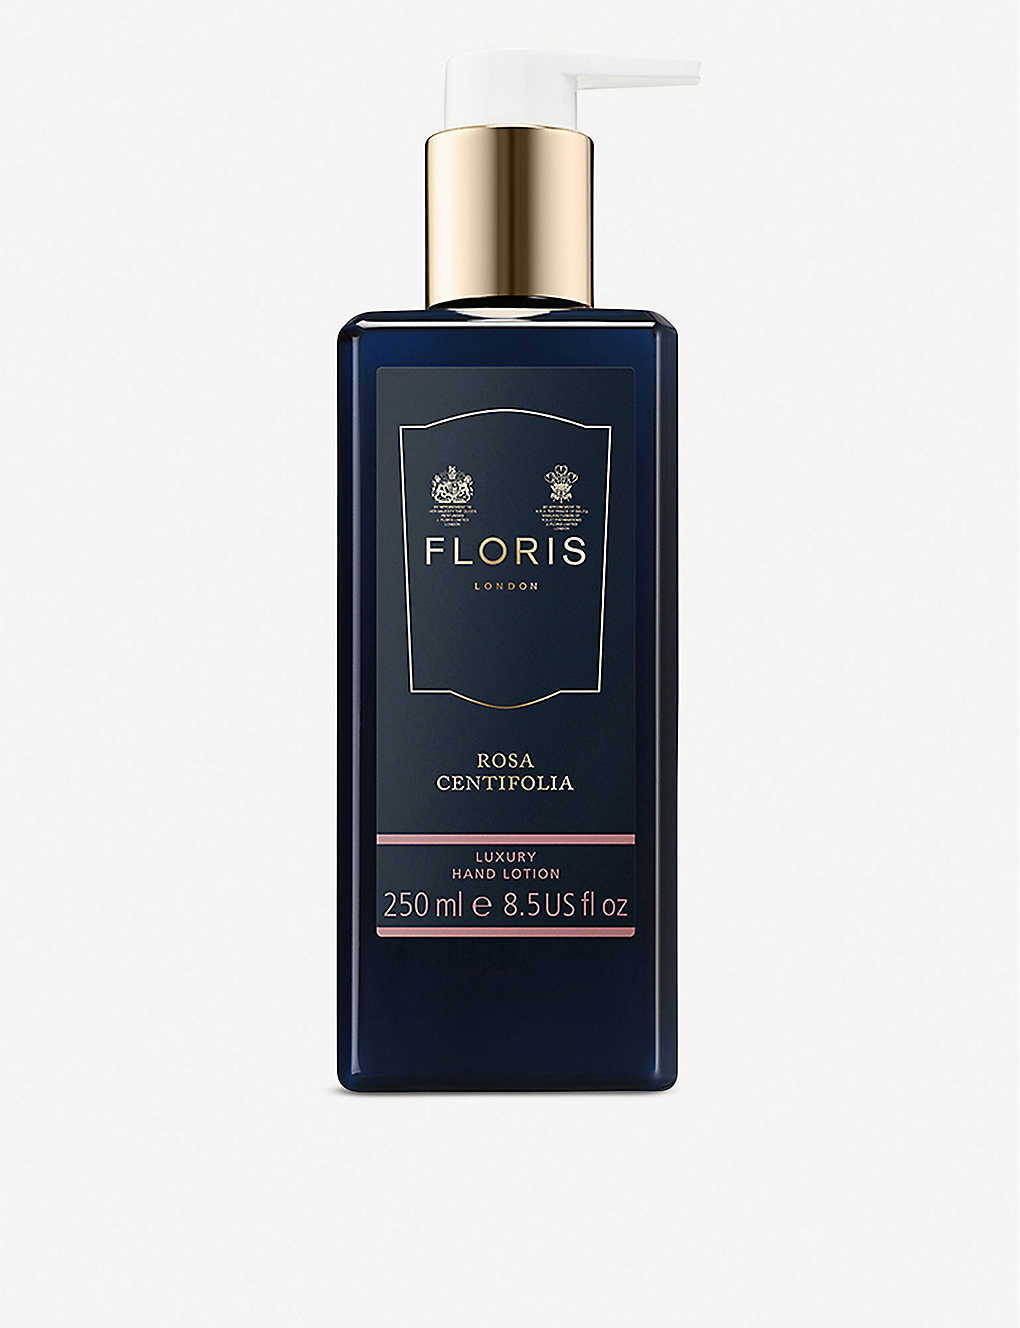 FLORIS: Rosa Centifolia luxury hand lotion 250ml